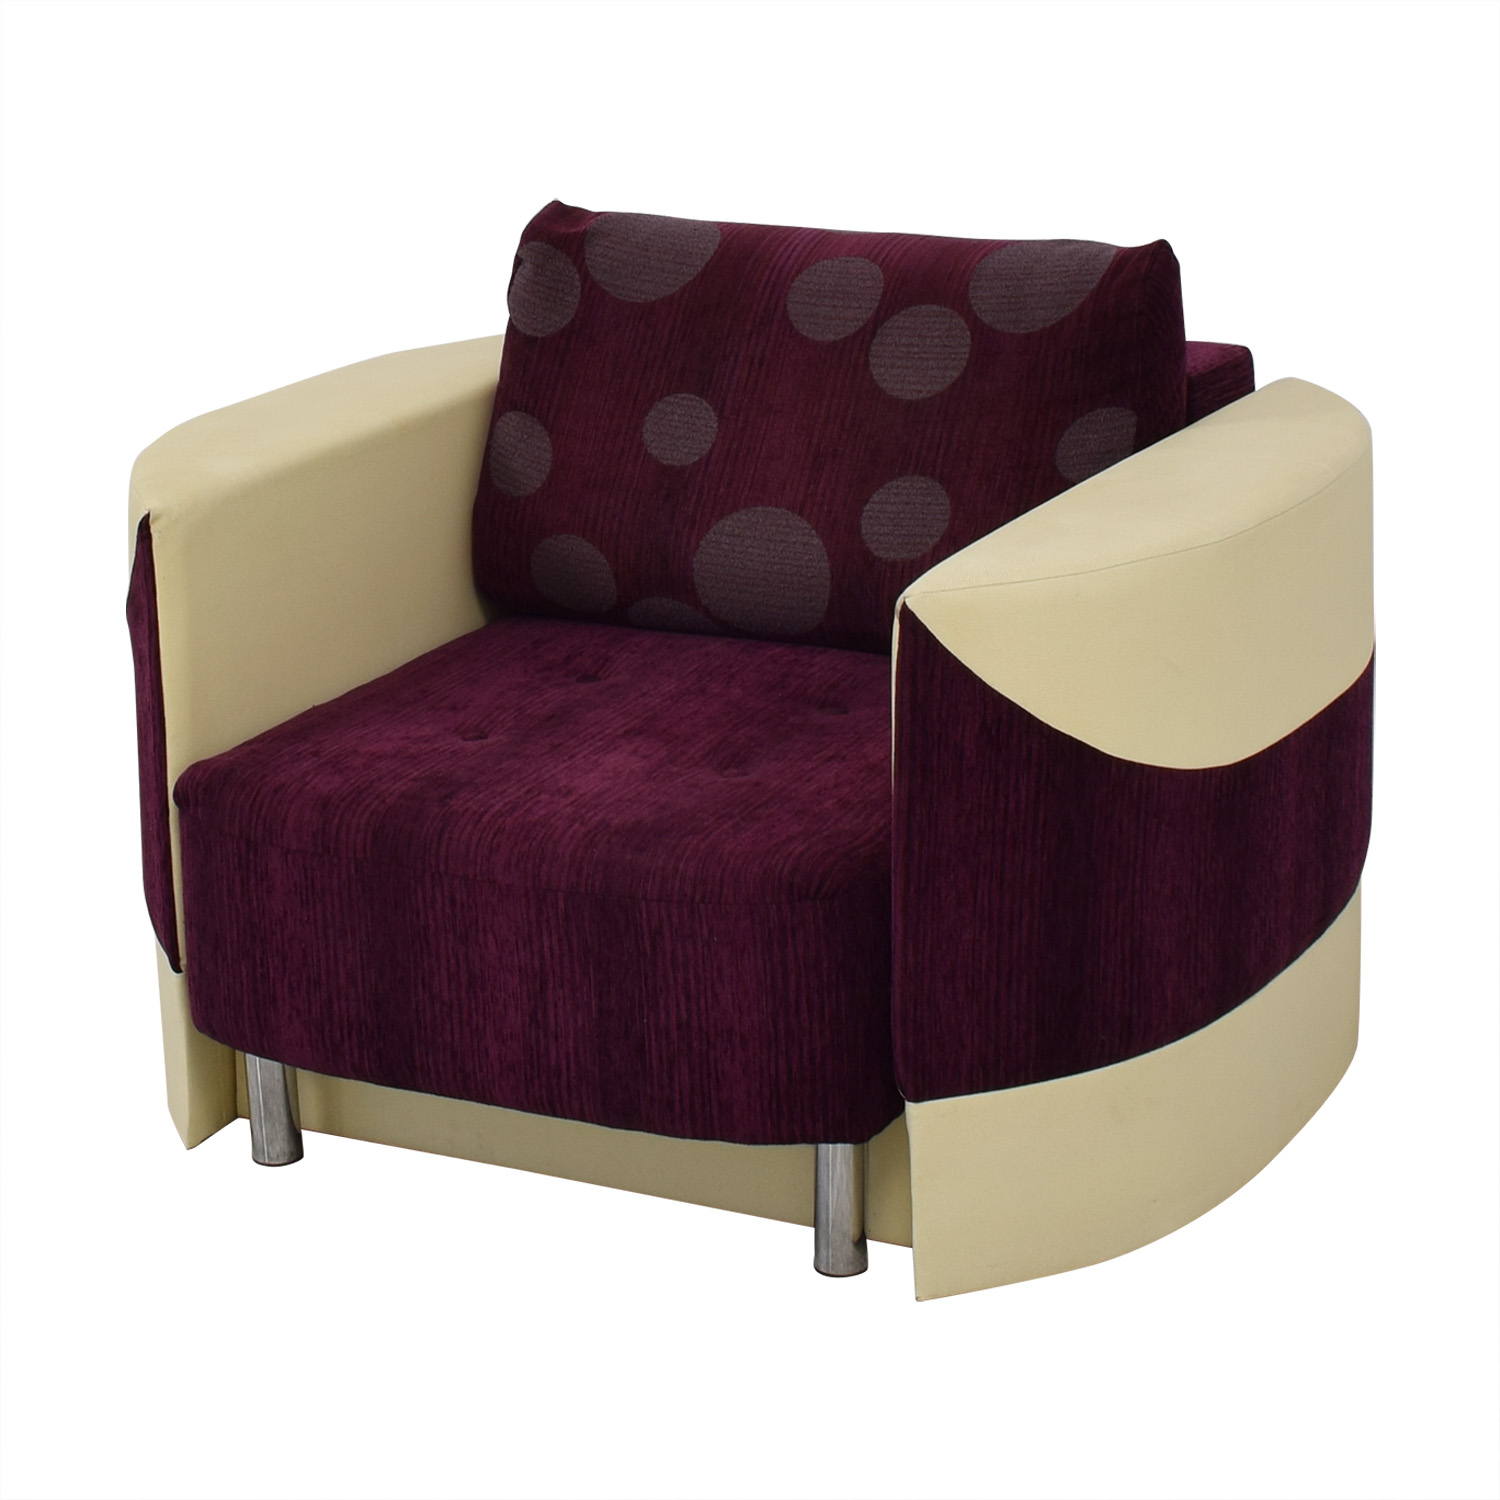 Accent Chair with Fold Down Bed